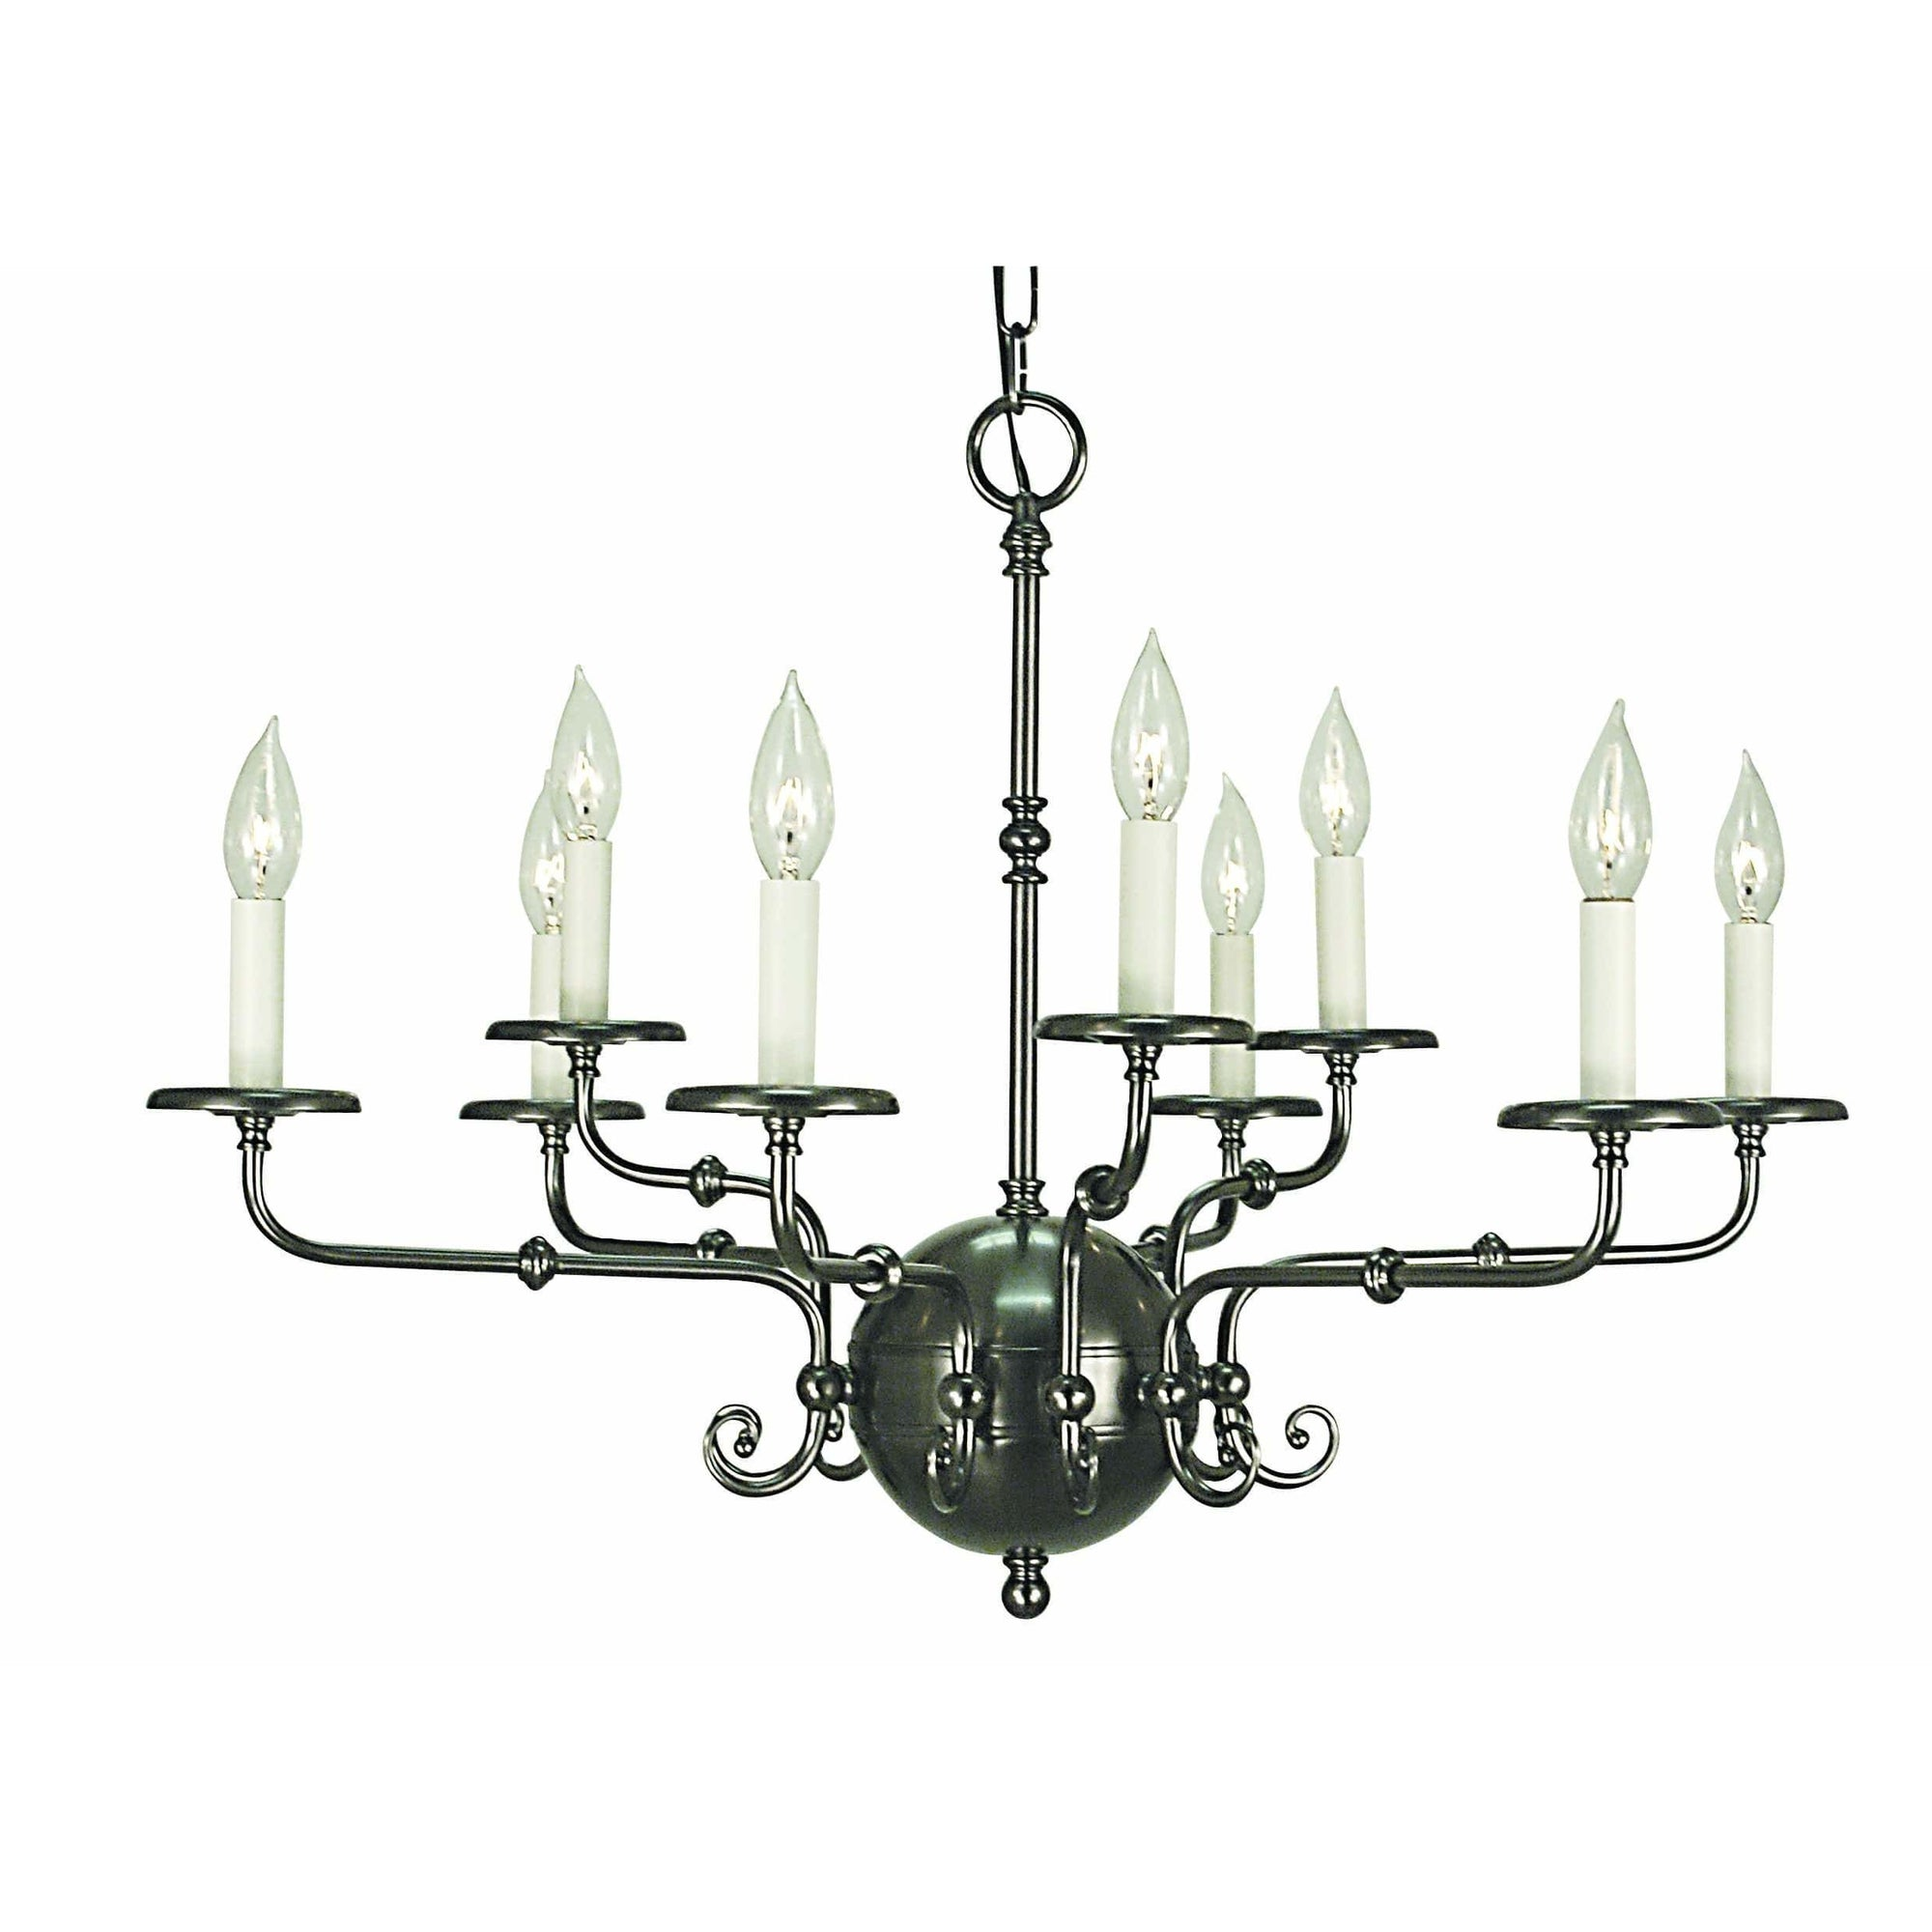 Framburg Chandeliers Antique Silver 9-Light Antique Silver Jamestown Dining Chandelier by Framburg 2379